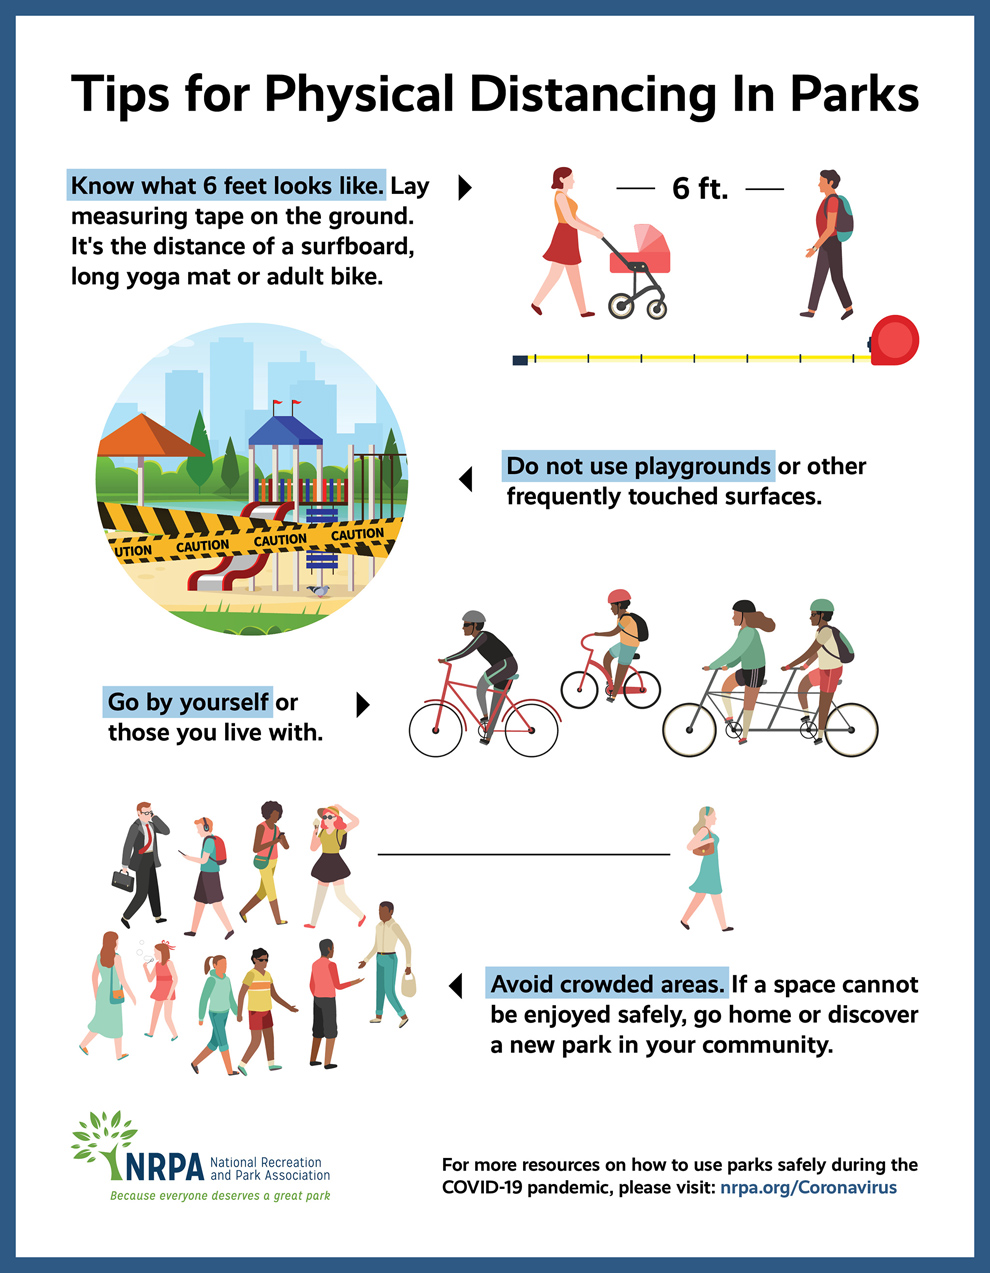 Tips for Physical Distancing in Parks - National Recreation and Park Association (NRPA) www.nrpa.org